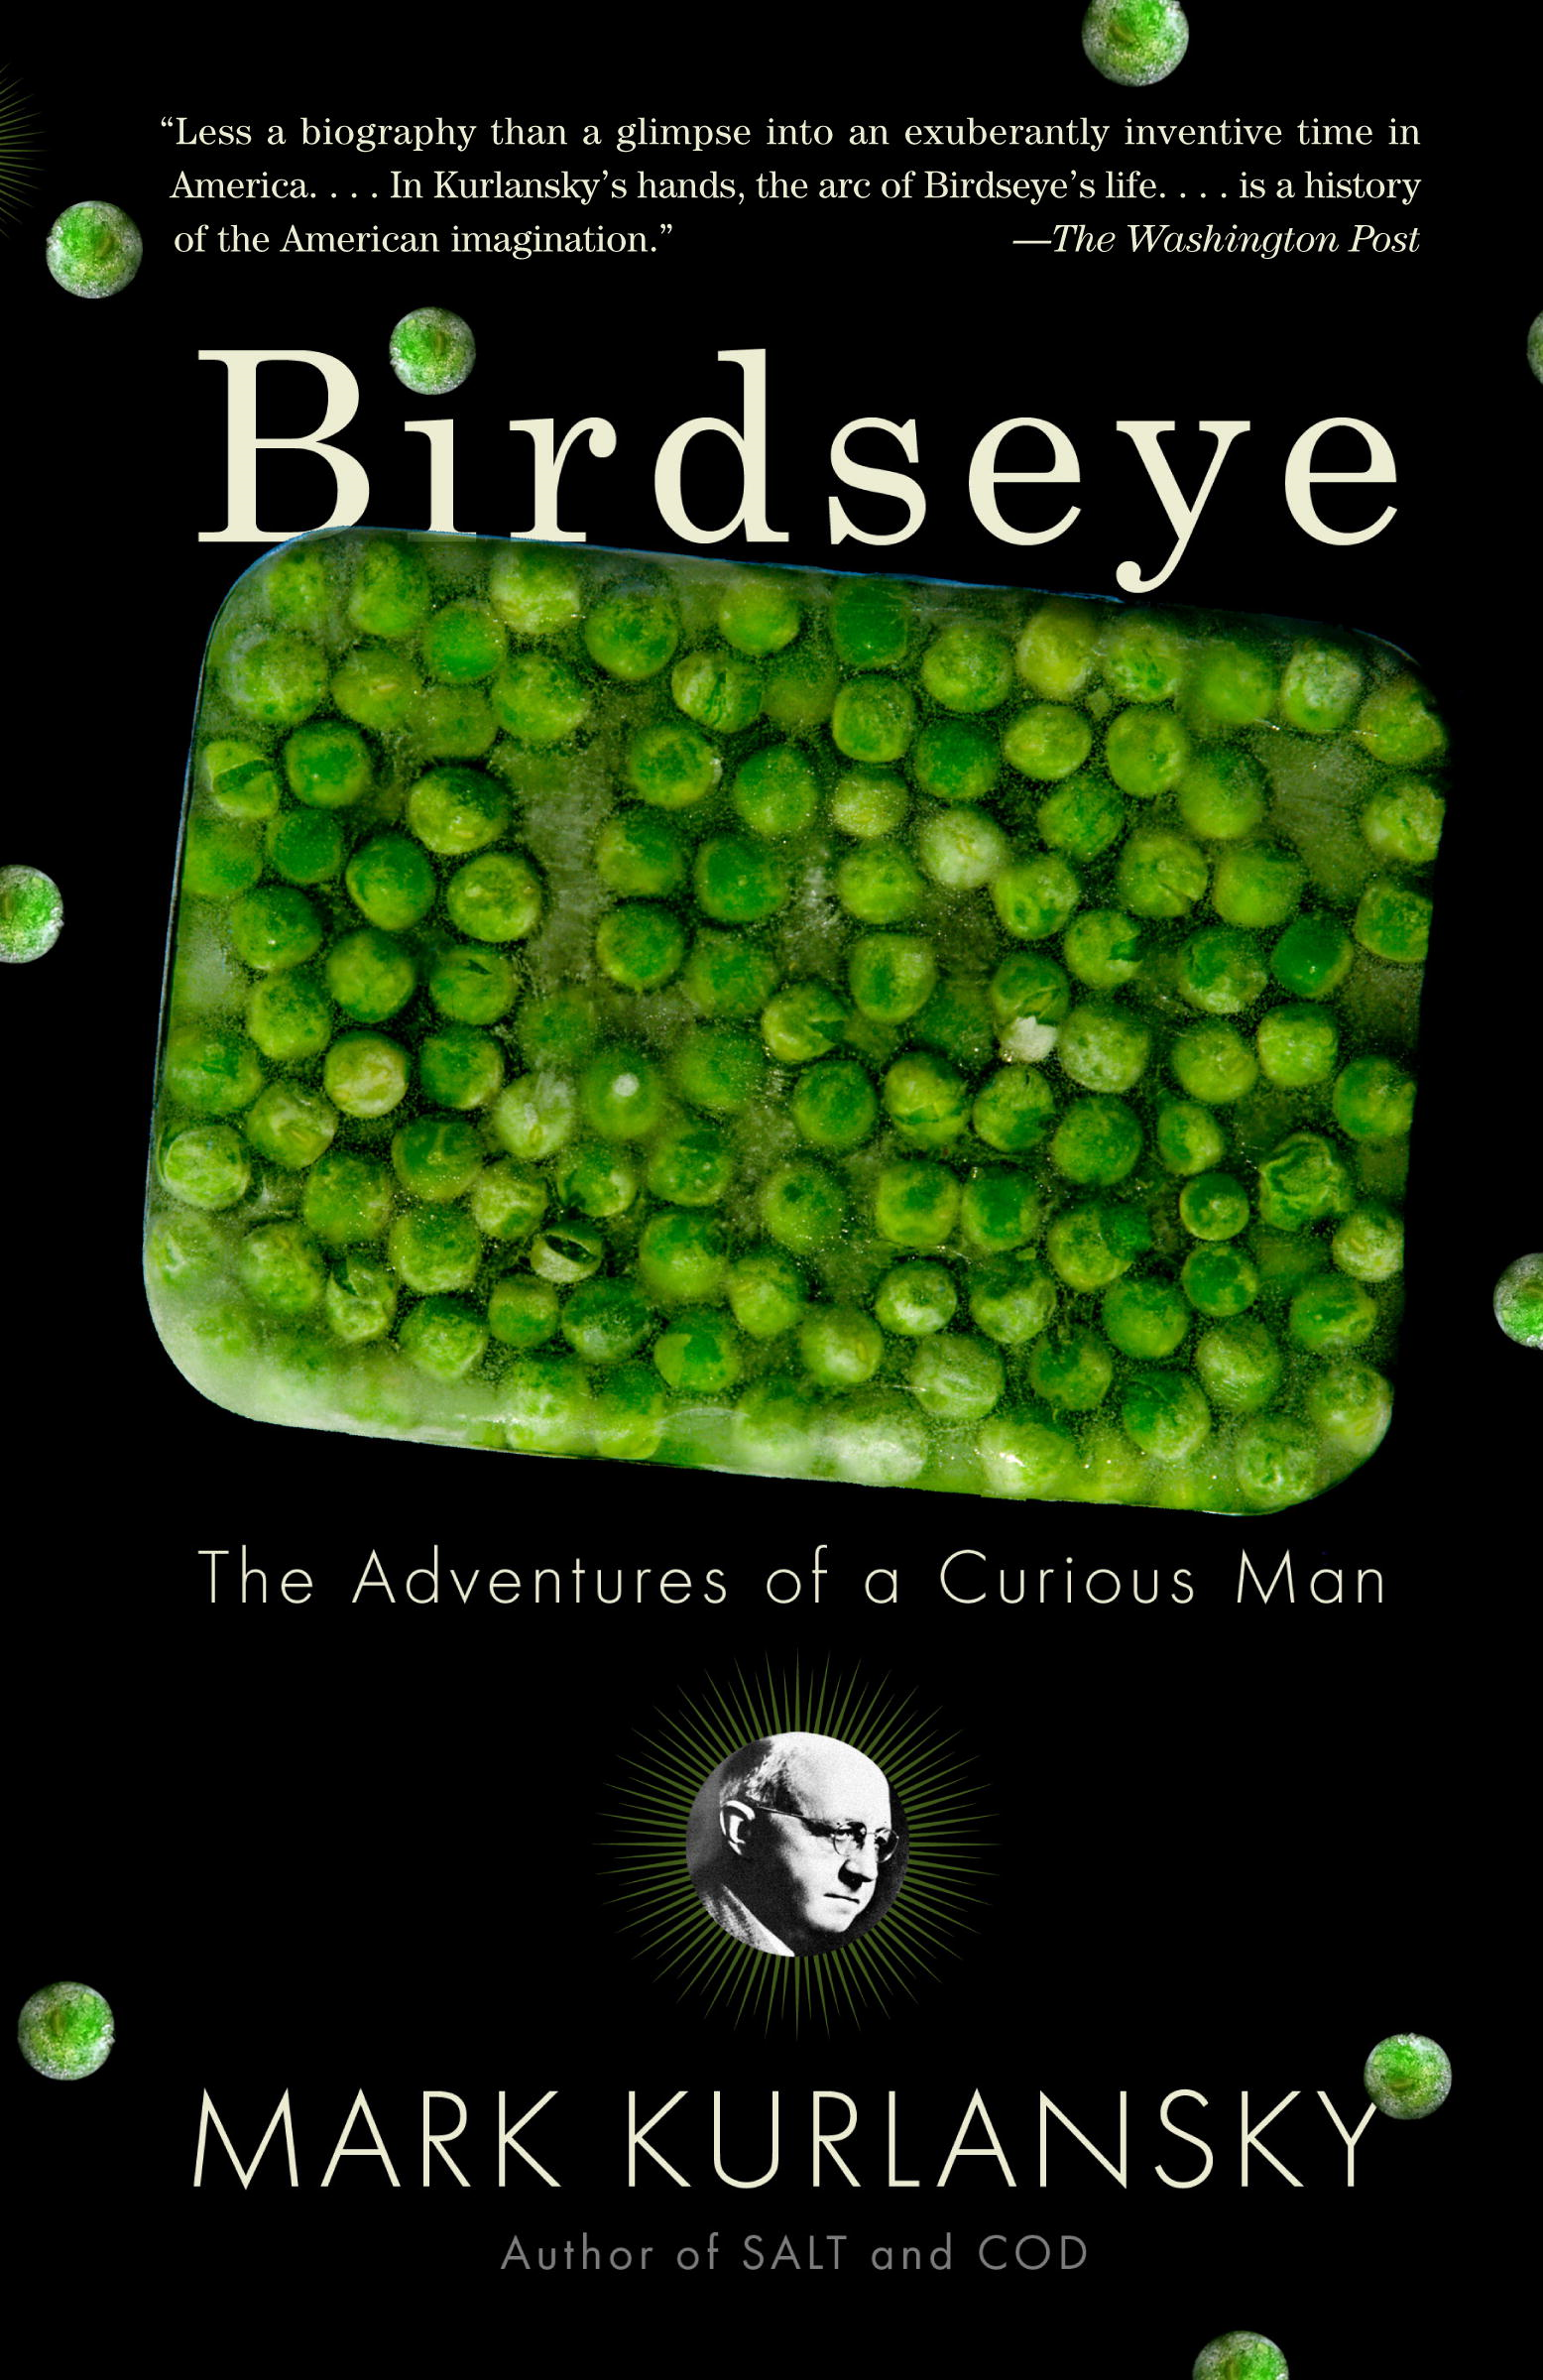 Birdseye By: Mark Kurlansky